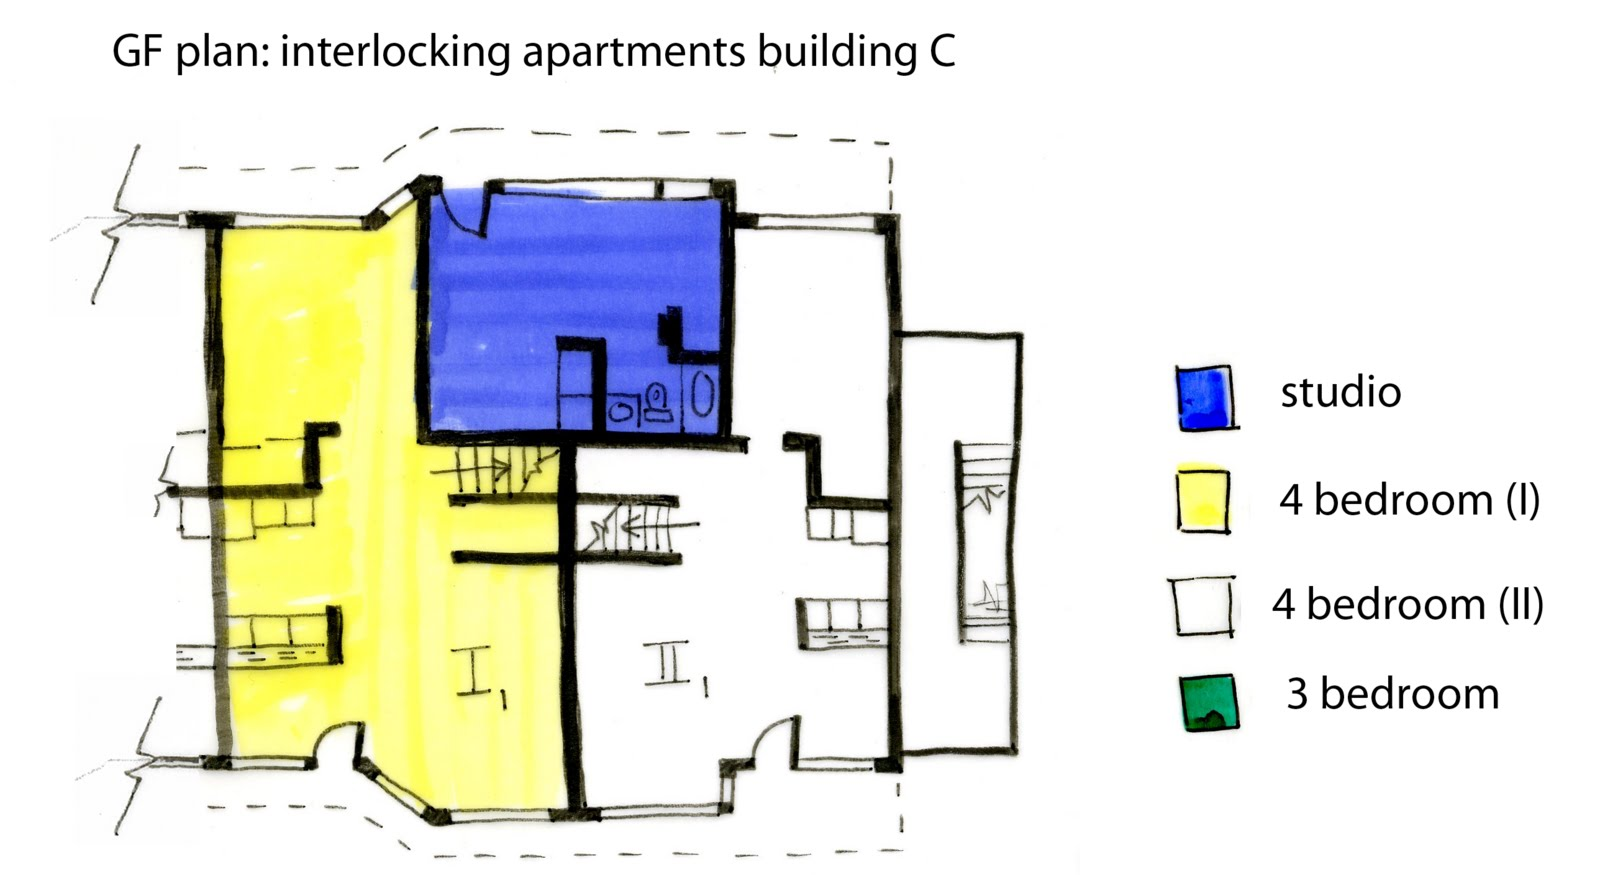 A Variety Of Apartment Configurations Make Up The 6 Buildings One Primary Arrangements Is Illustrated Below